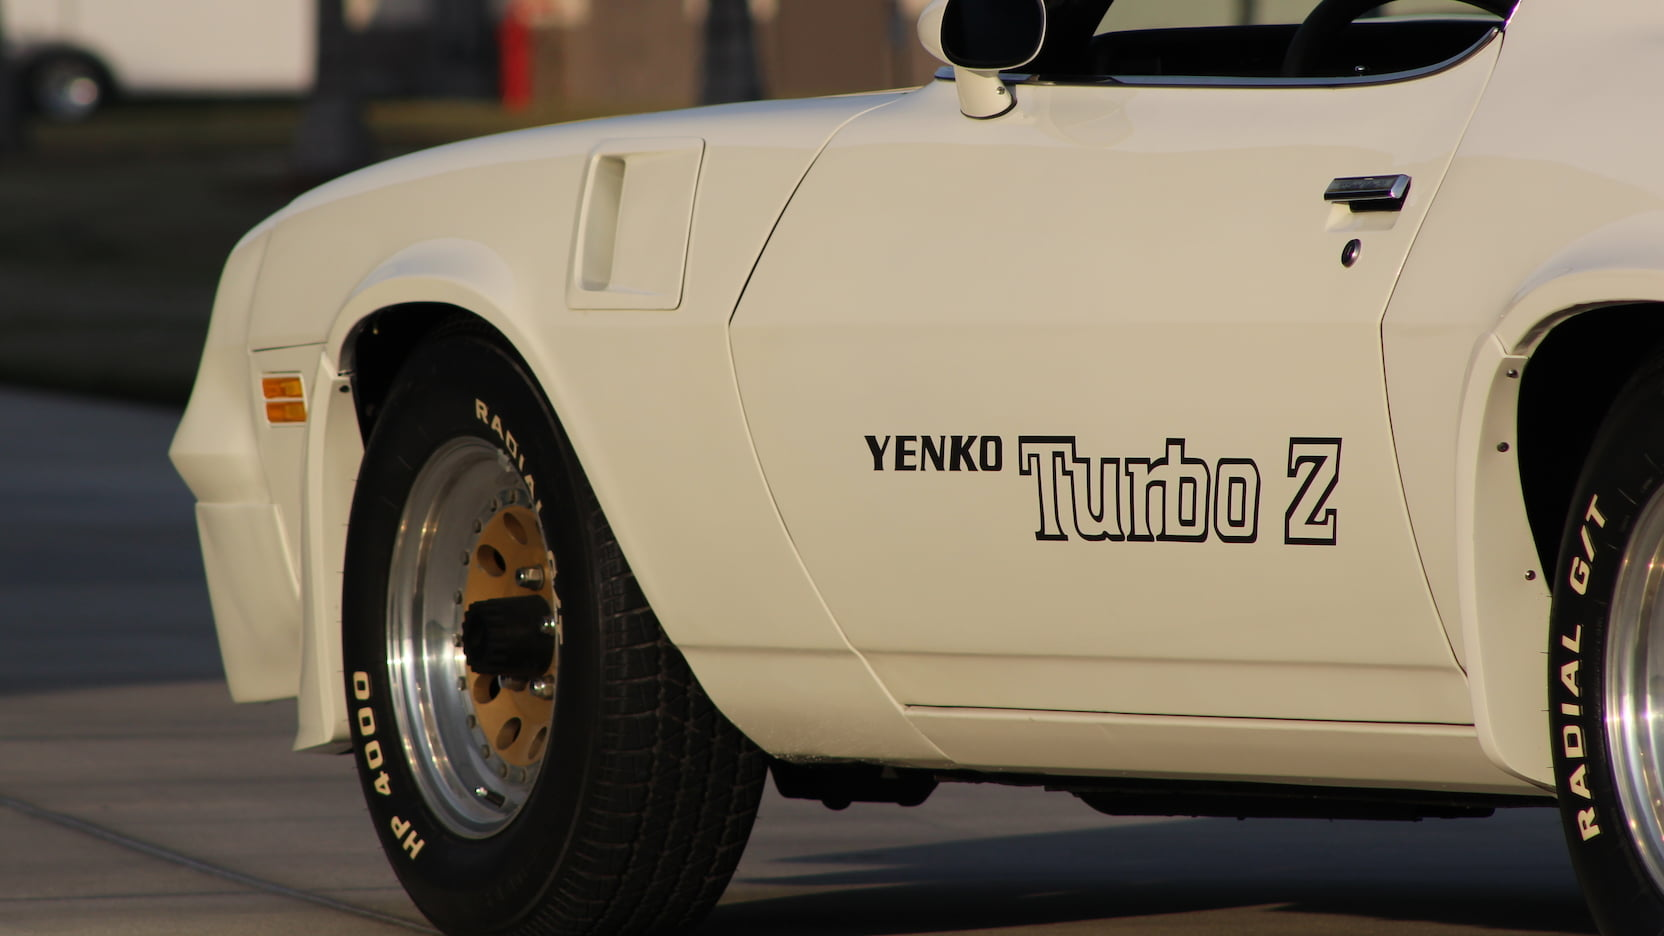 1981 Chevrolet Yenko Turbo Z side detail